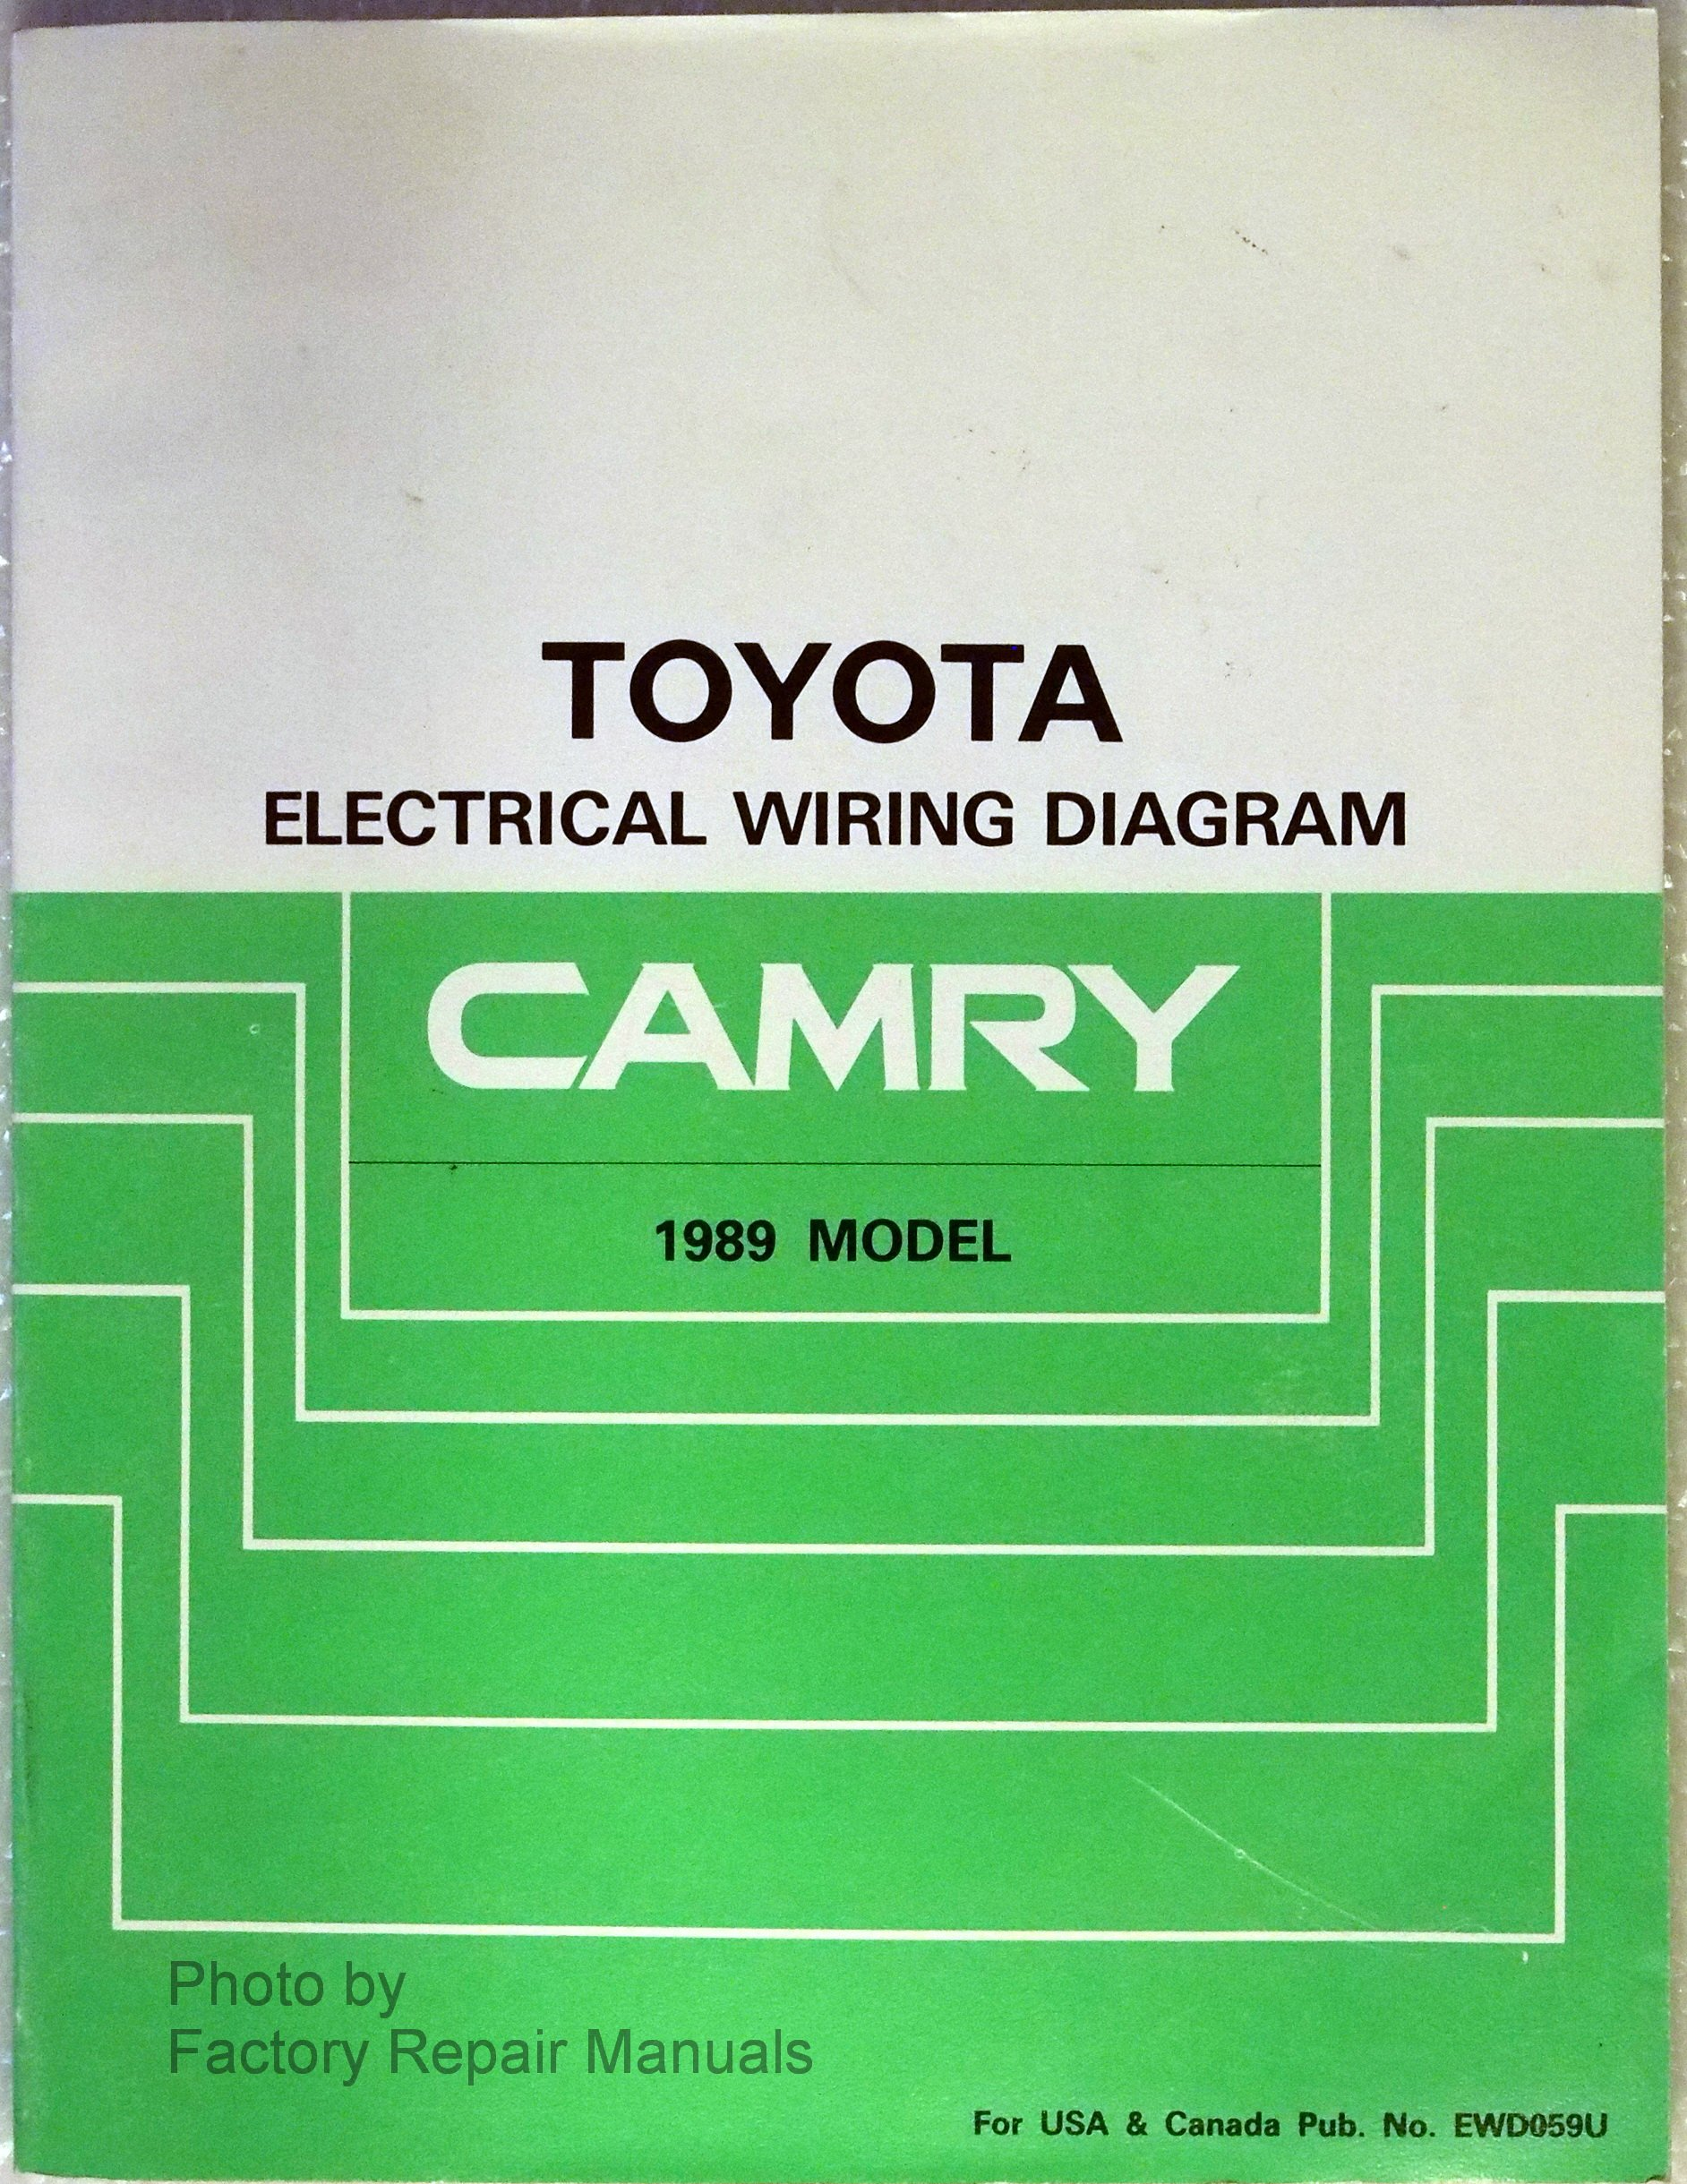 1989 Toyota Camry Electrical Wiring Diagram Manual (Toyota Electrical  Wiring Diagram Camry 1989 Model): Amazon.com: Books